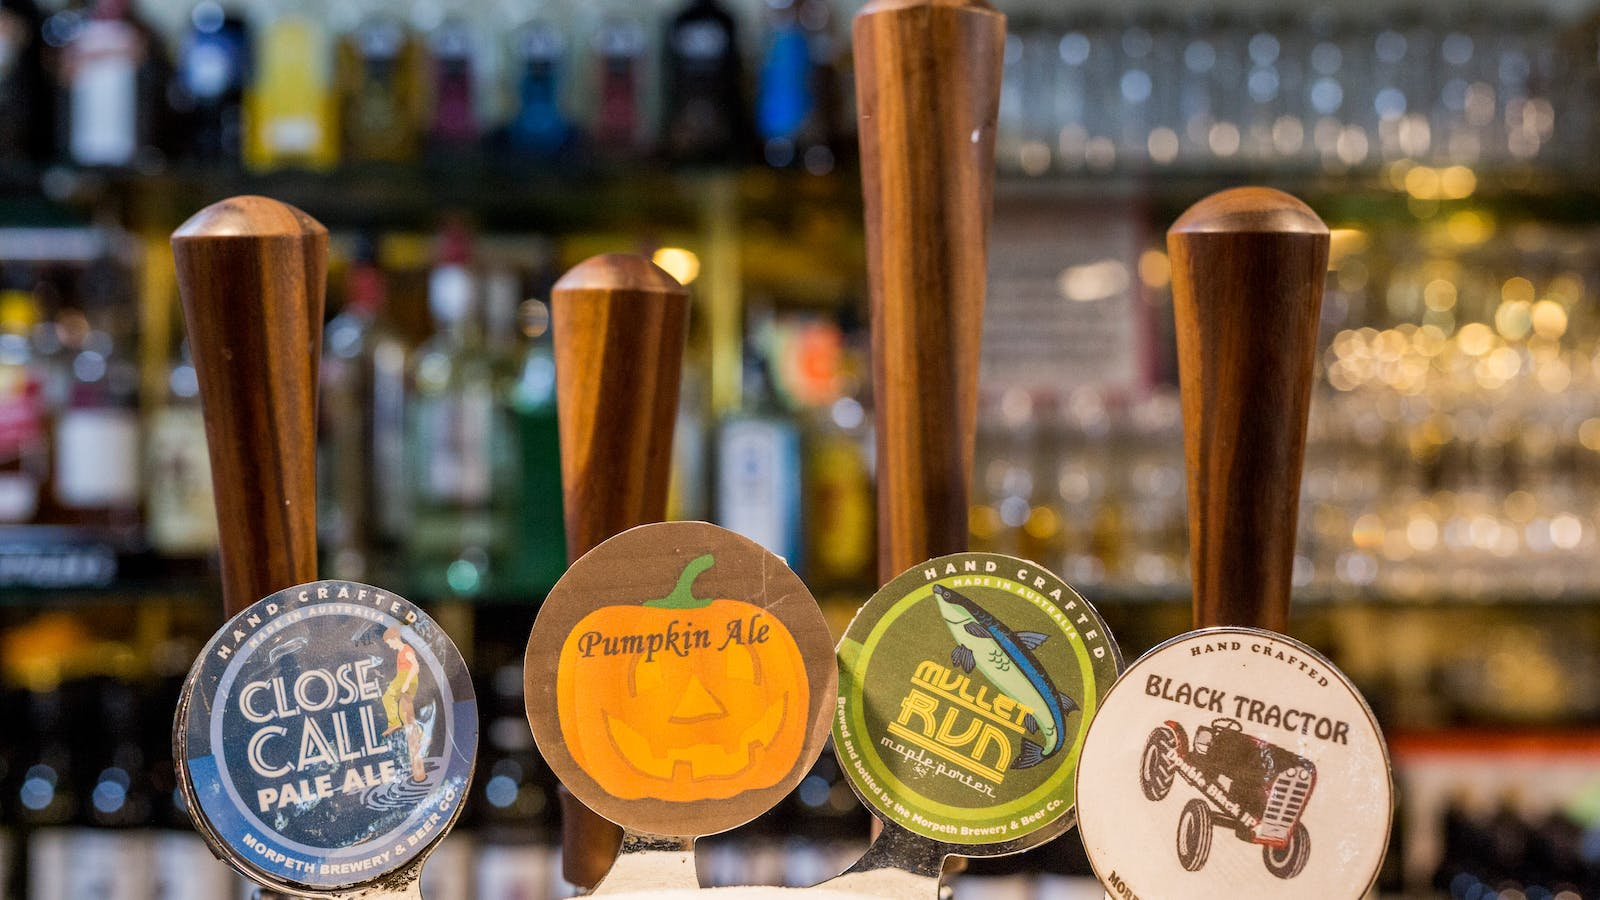 Commercial Hotel Morpeth - Tap